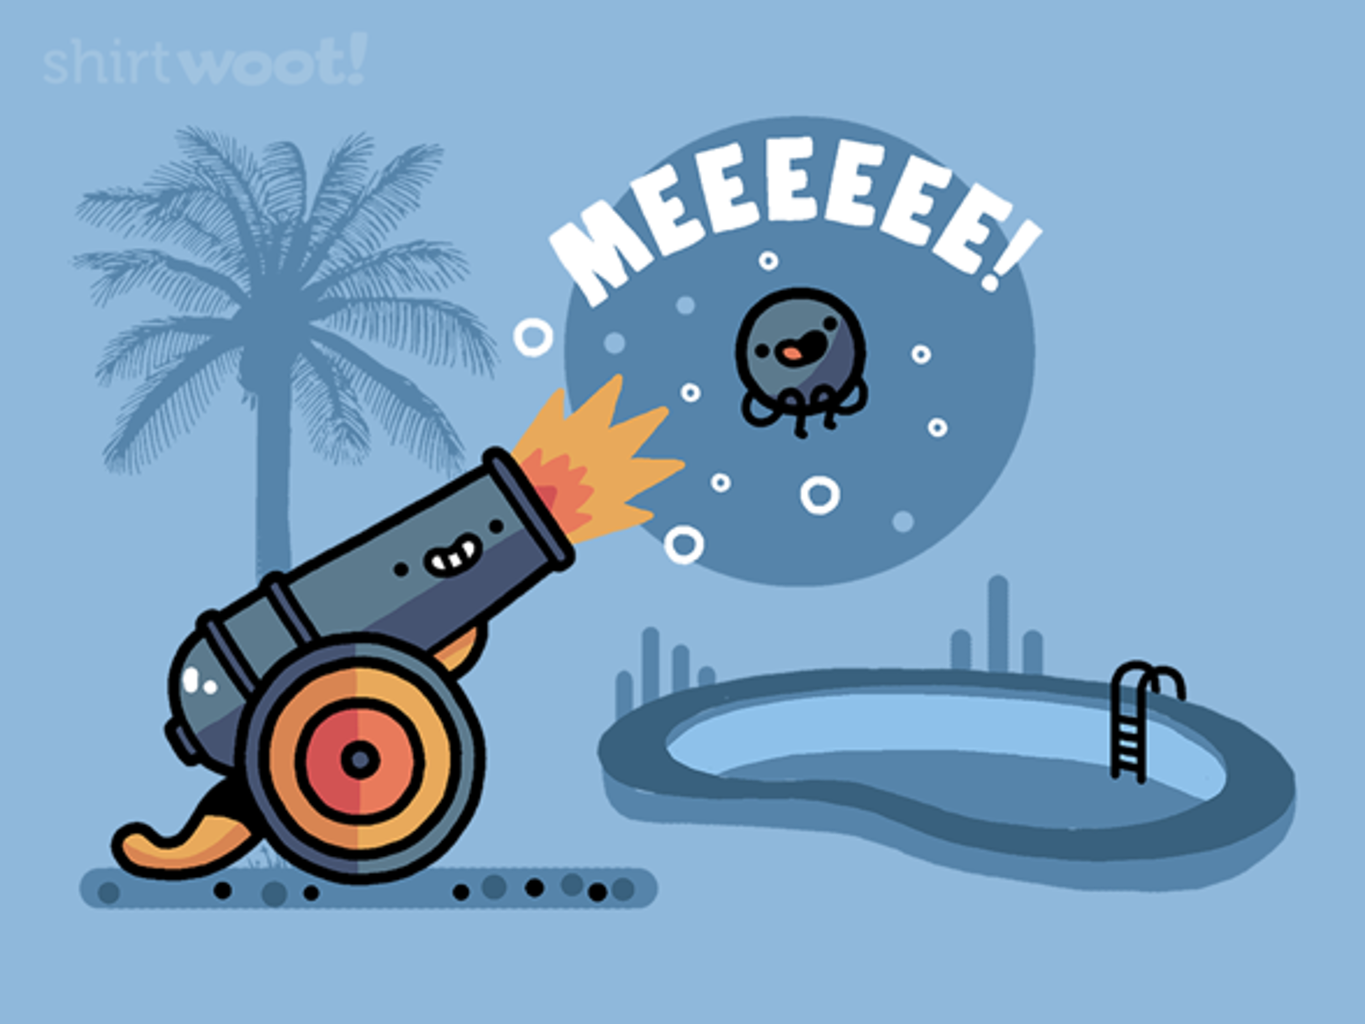 Woot!: A Cannonball's Cannonball